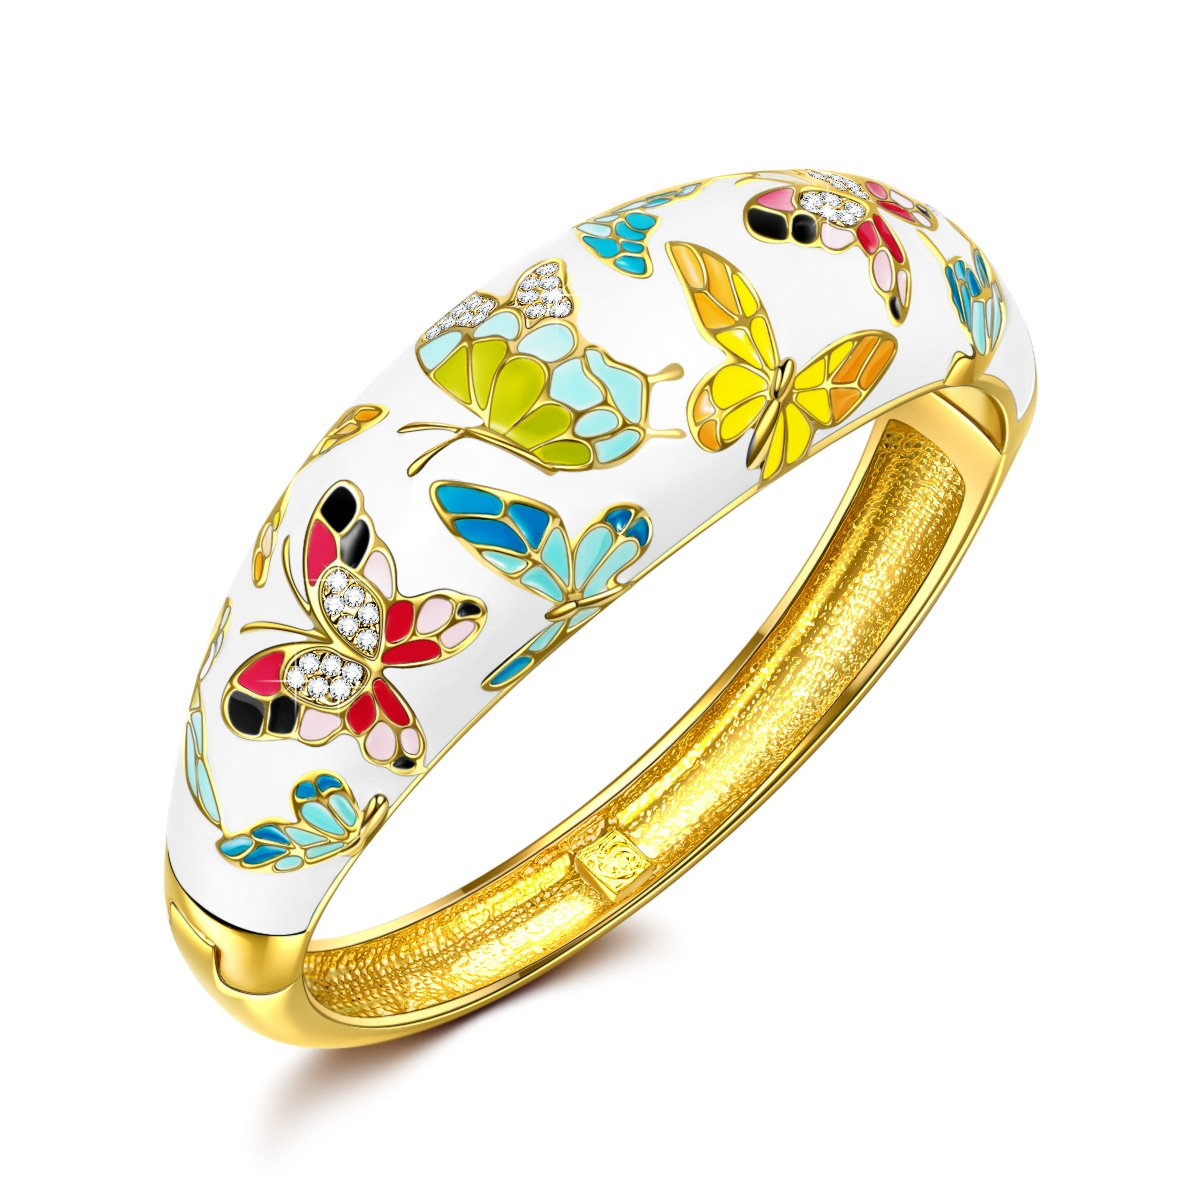 QIANSE Spring of Versailles Yellow Gold Bangle Bracelets Enamel Butterfly Bangles for Women Jewelry for Women Birthday Gifts for Mom Girlfriend Daughter Grandma Mother in Law Present